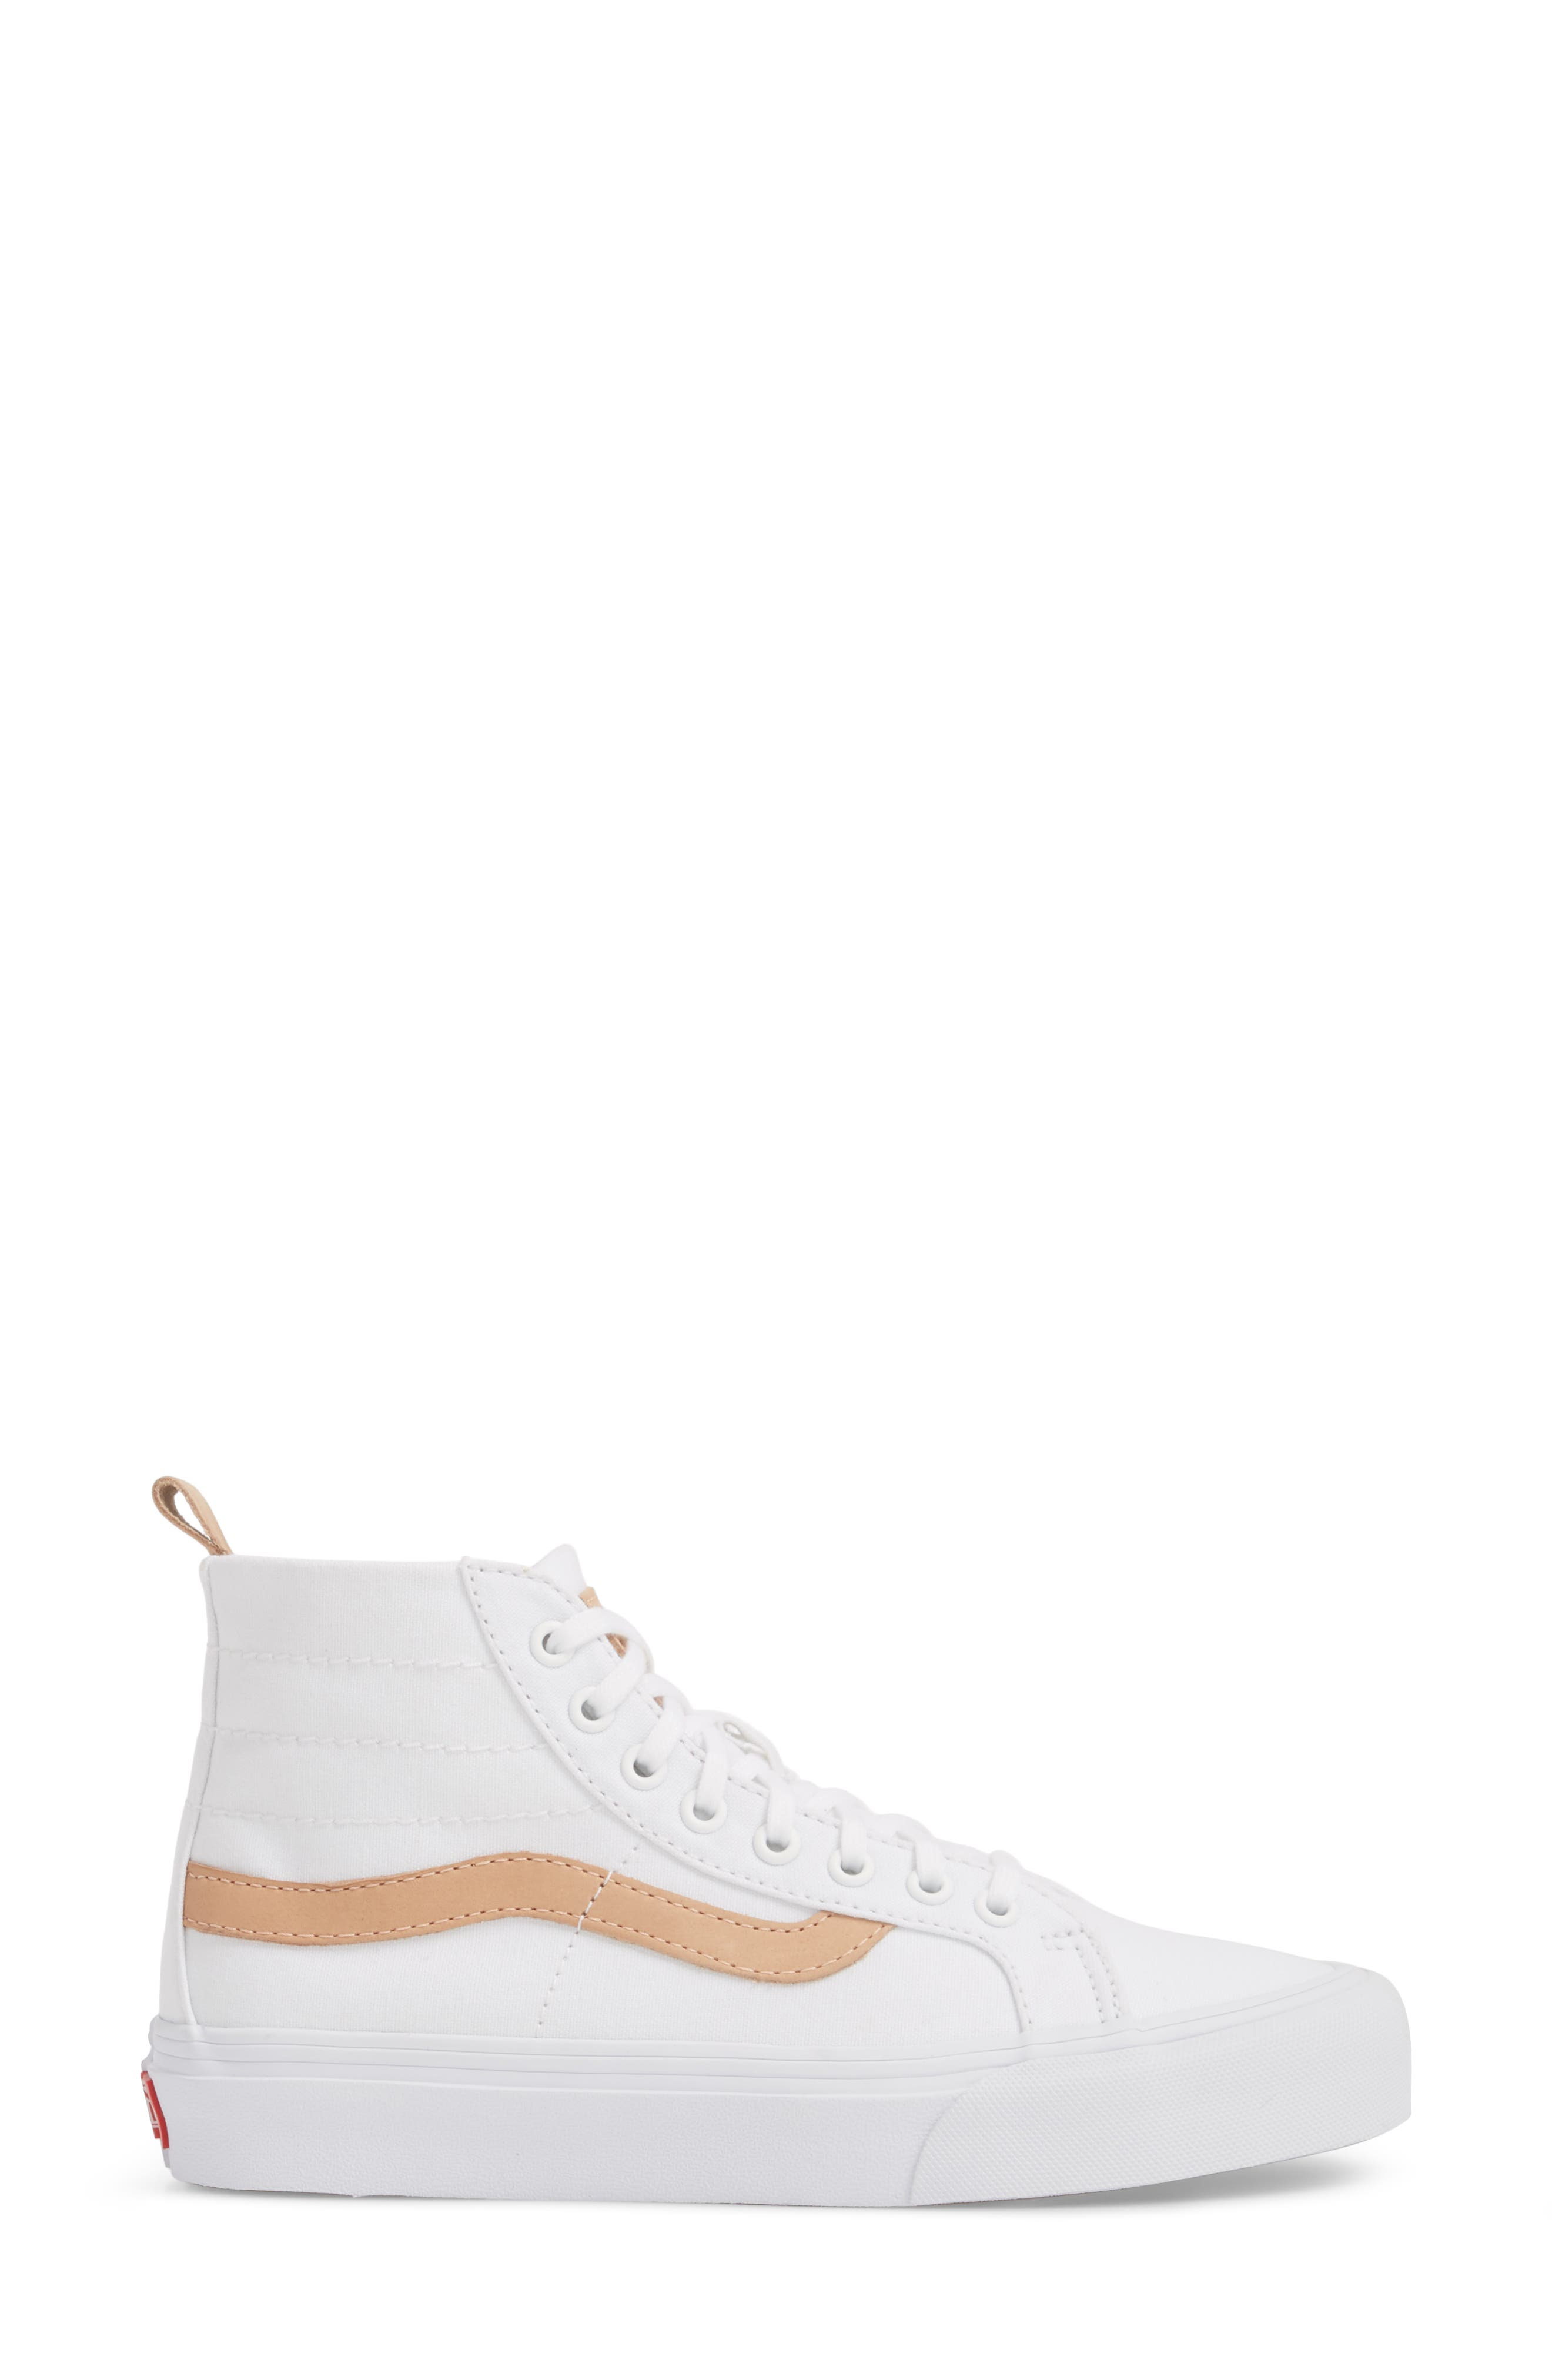 x Leila Hurst Sk8-Hi Decon SF Sneaker,                             Alternate thumbnail 3, color,                             100